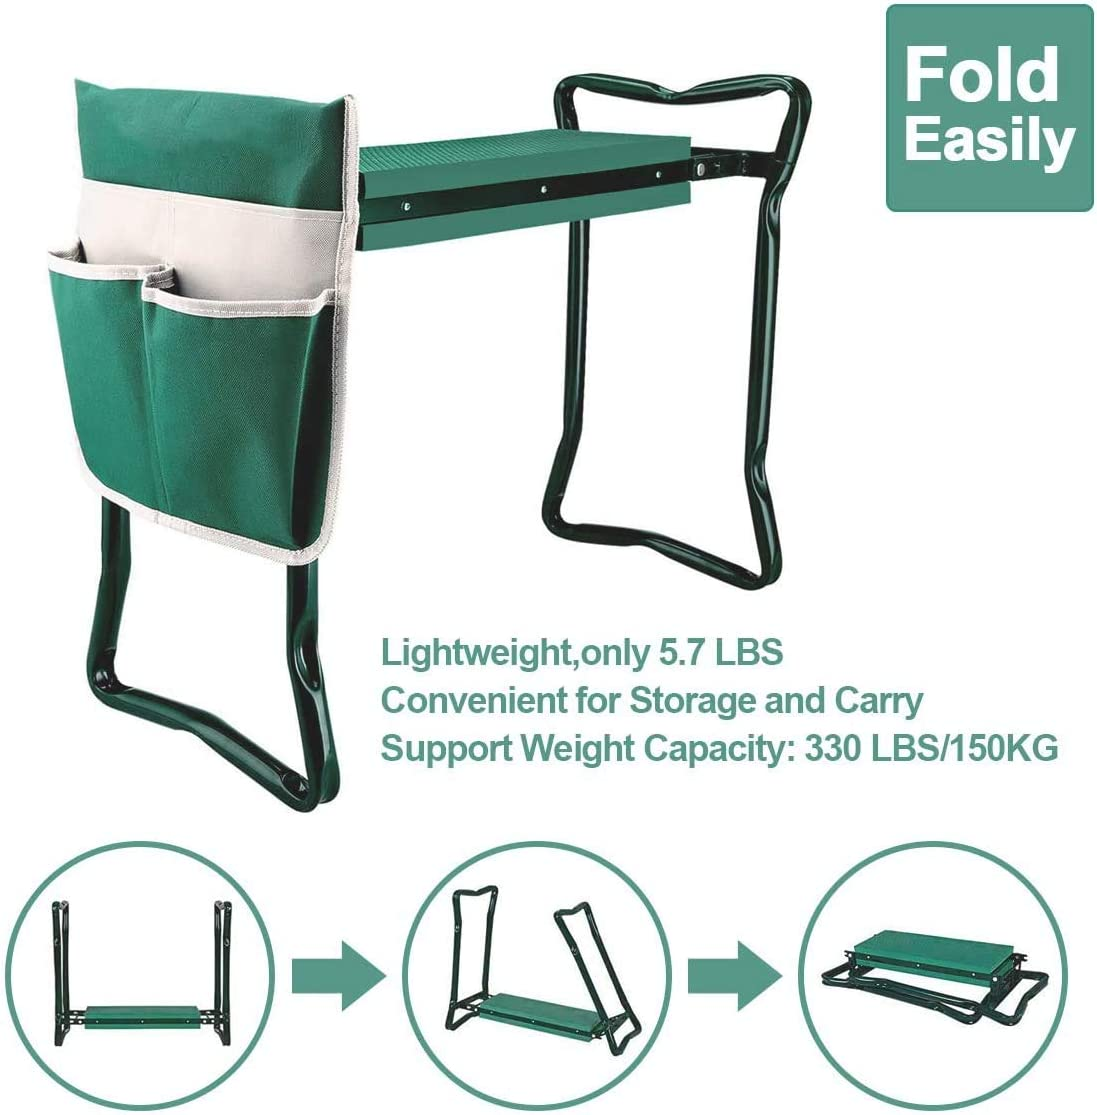 Besthls Garden Kneeler and Seat Stool Heavy Duty Garden Folding Bench with Large Tool Pocket and Soft EVA Kneeling Pad for Gardening Lovers